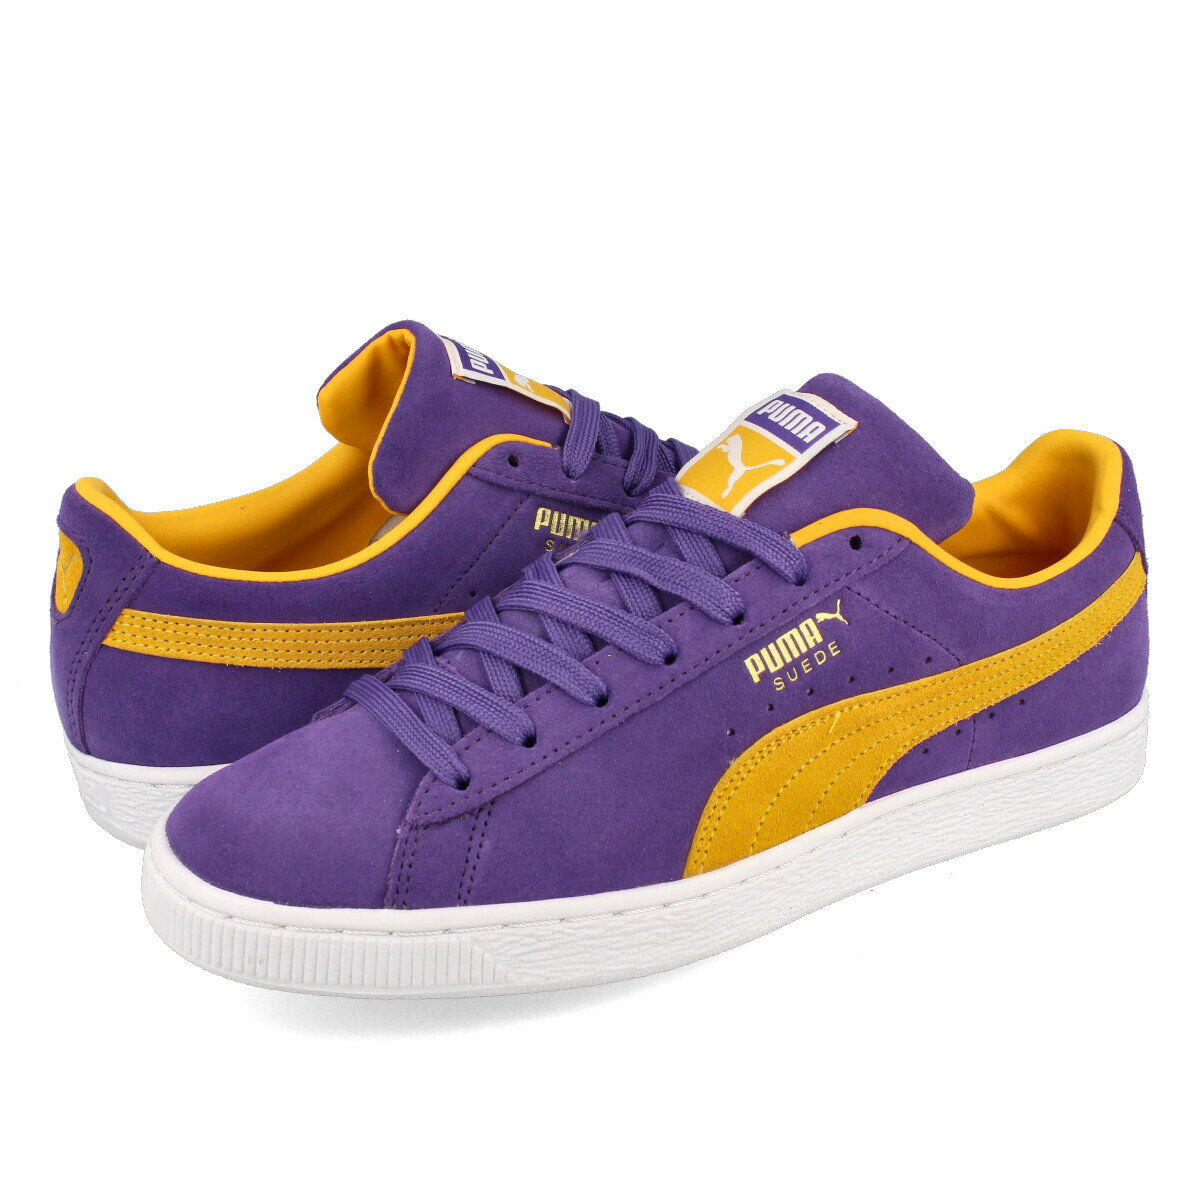 PUMA SUEDE TEAMS  LOS ANGELES LAKERS  プーマ スウェード チームス PRISM VIOLET SPECTRA YELLOW 380168-03